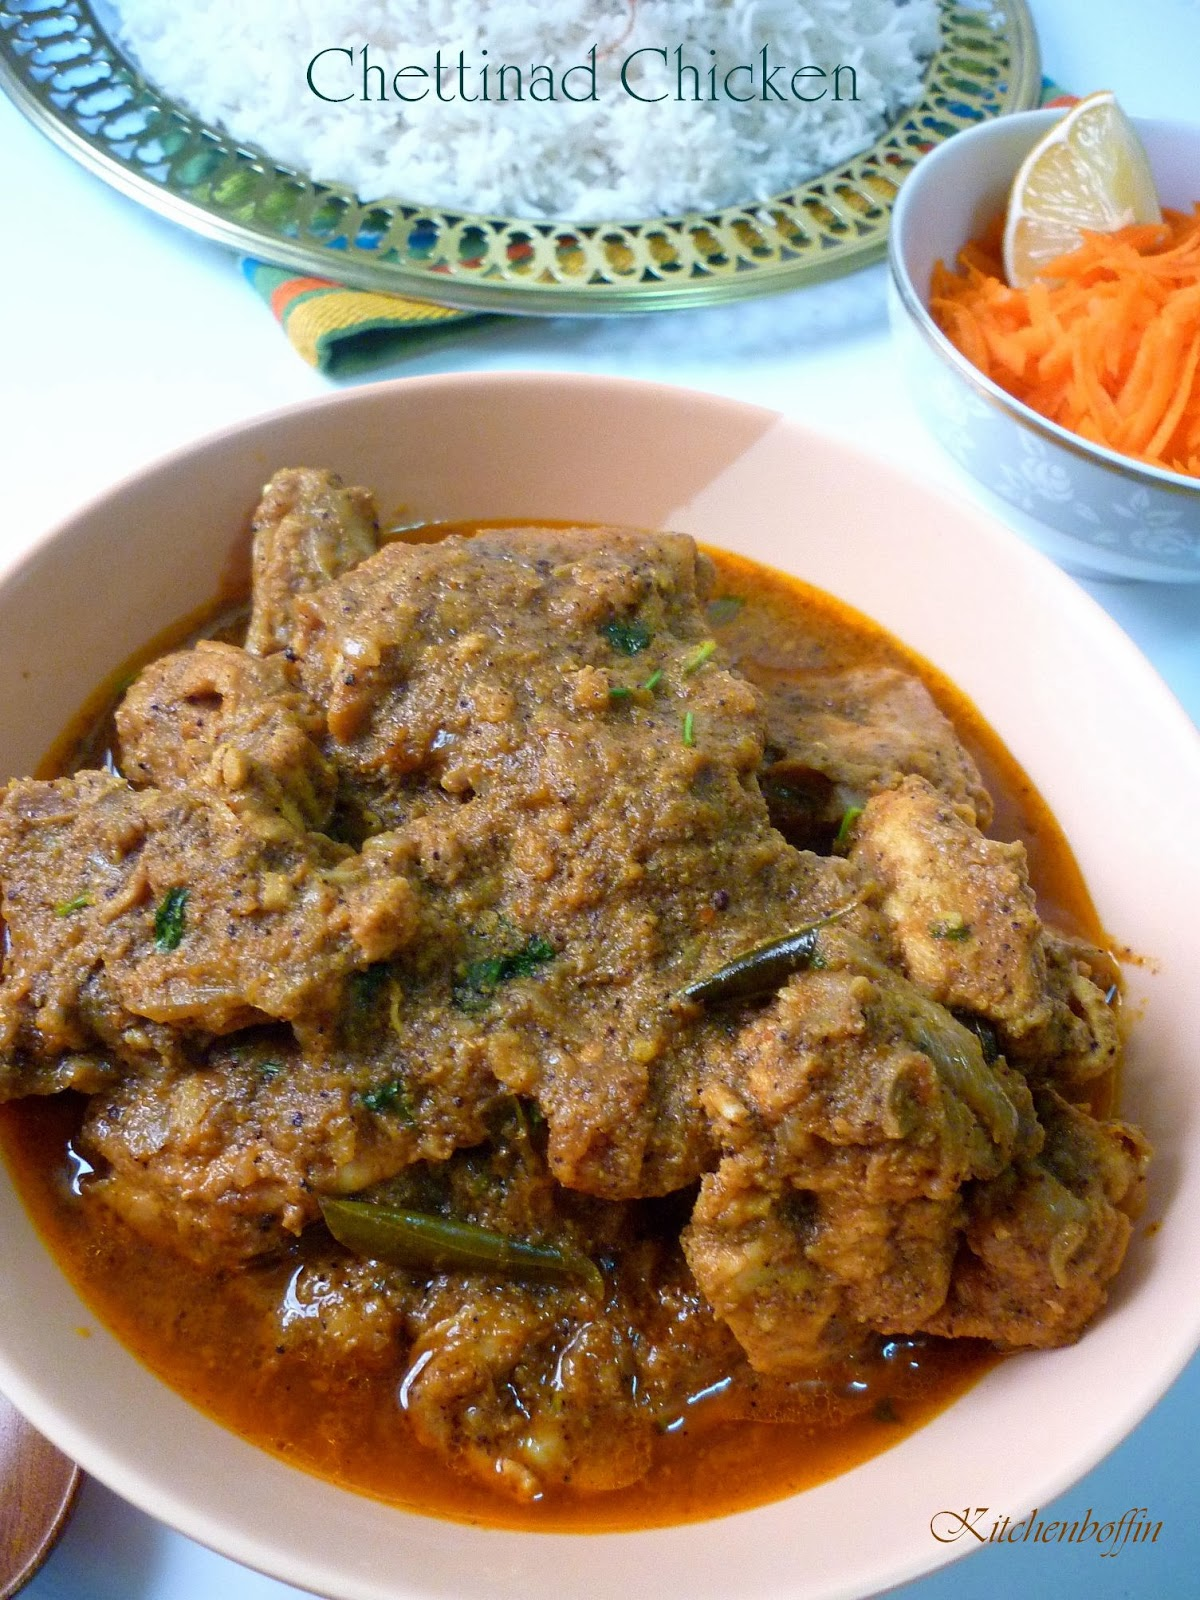 Kitchen boffin chicken chettinad for Anjappar chettinad south indian cuisine